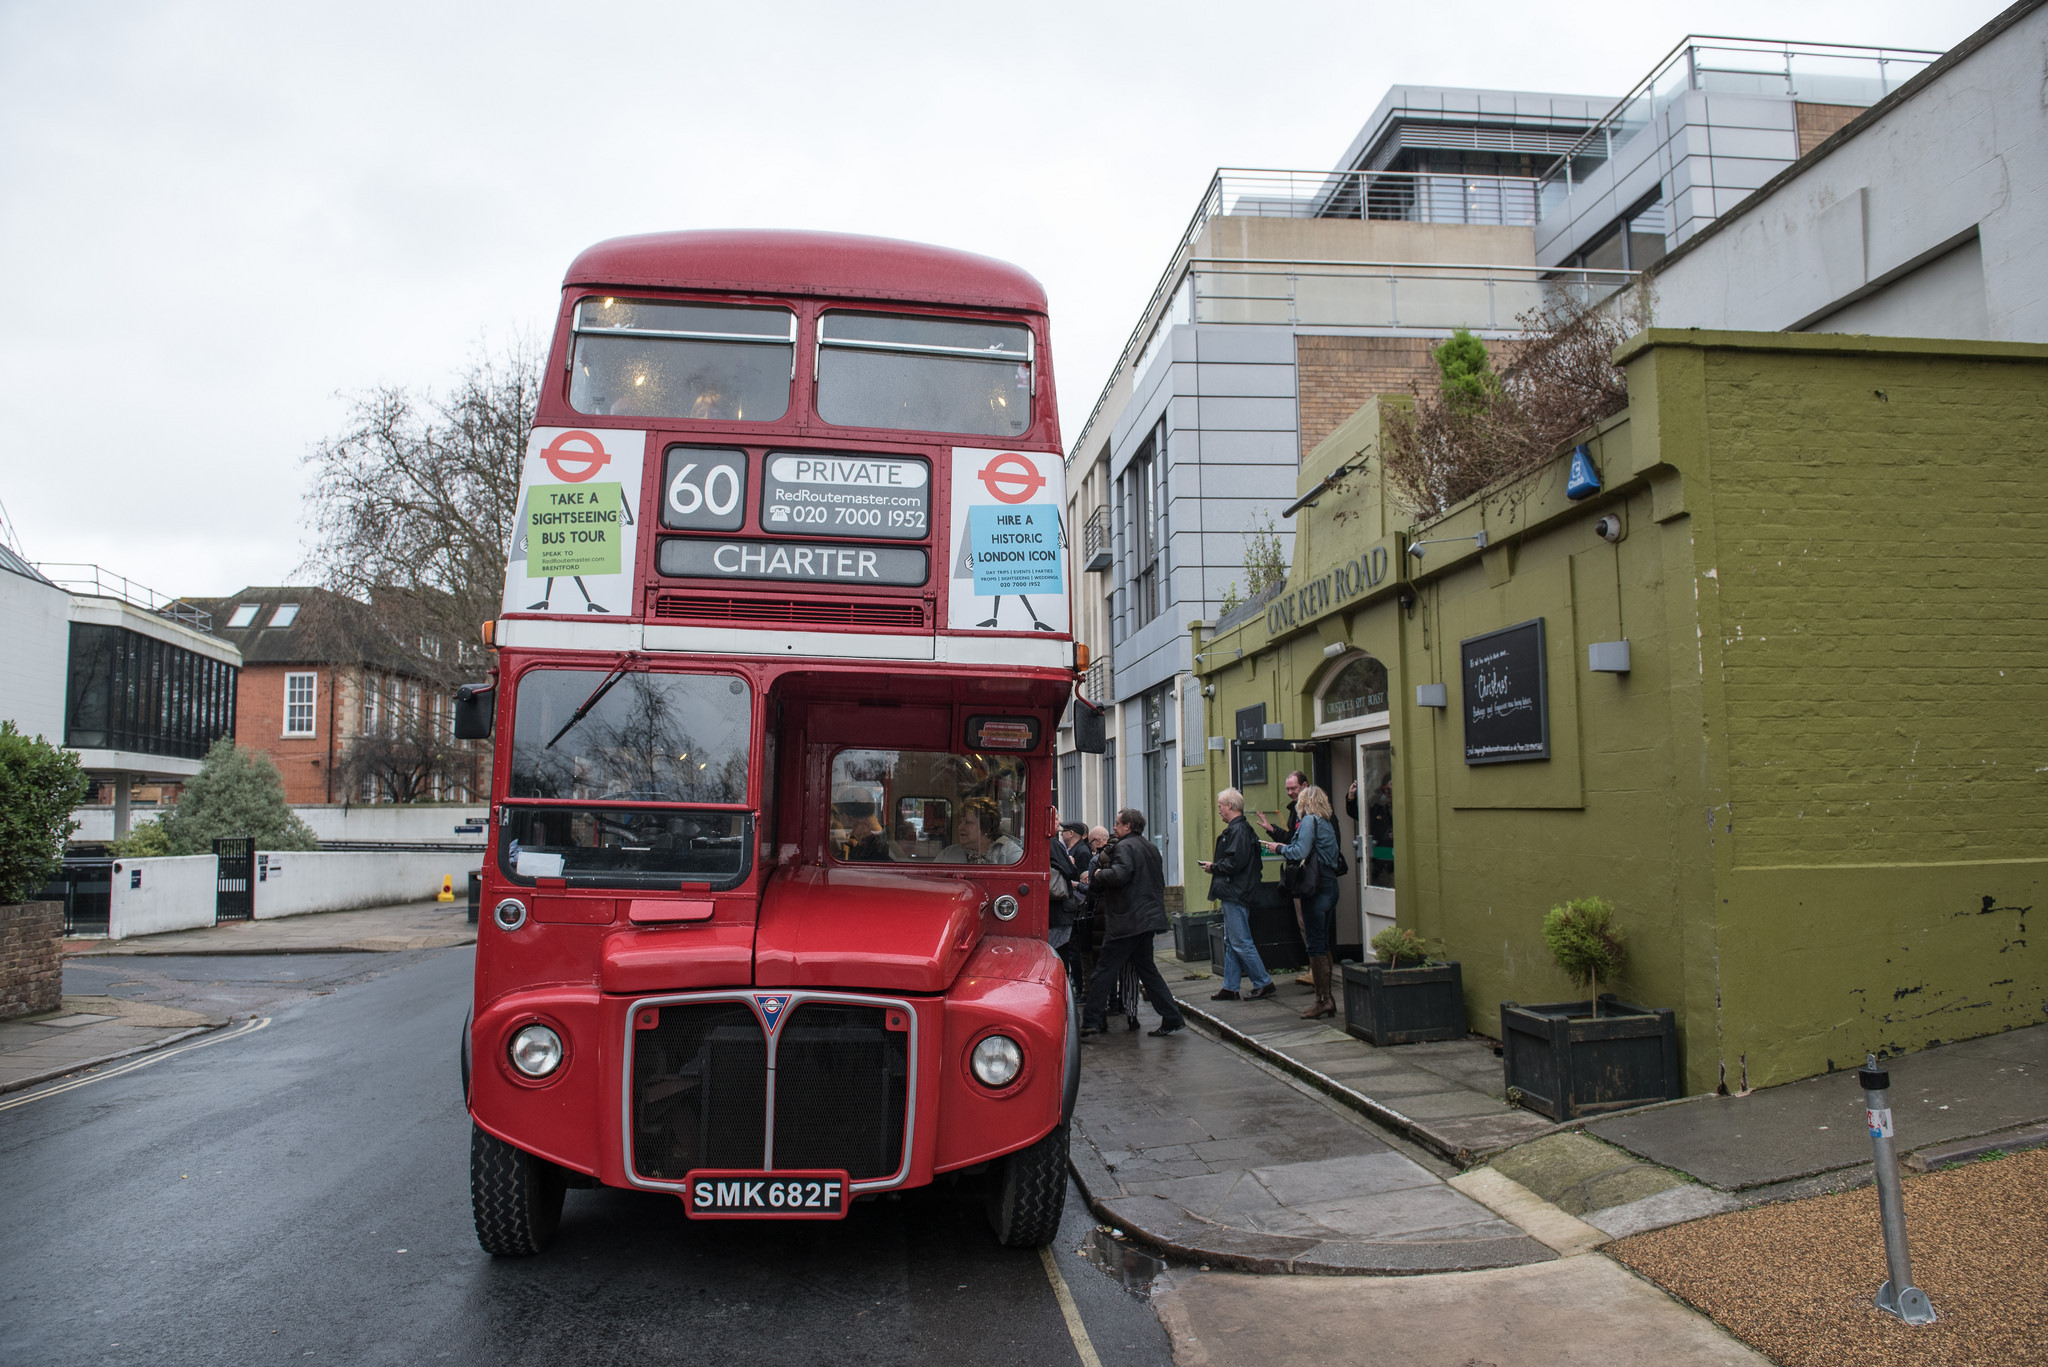 The 60s bus outside the old Station Hotel, Richmond